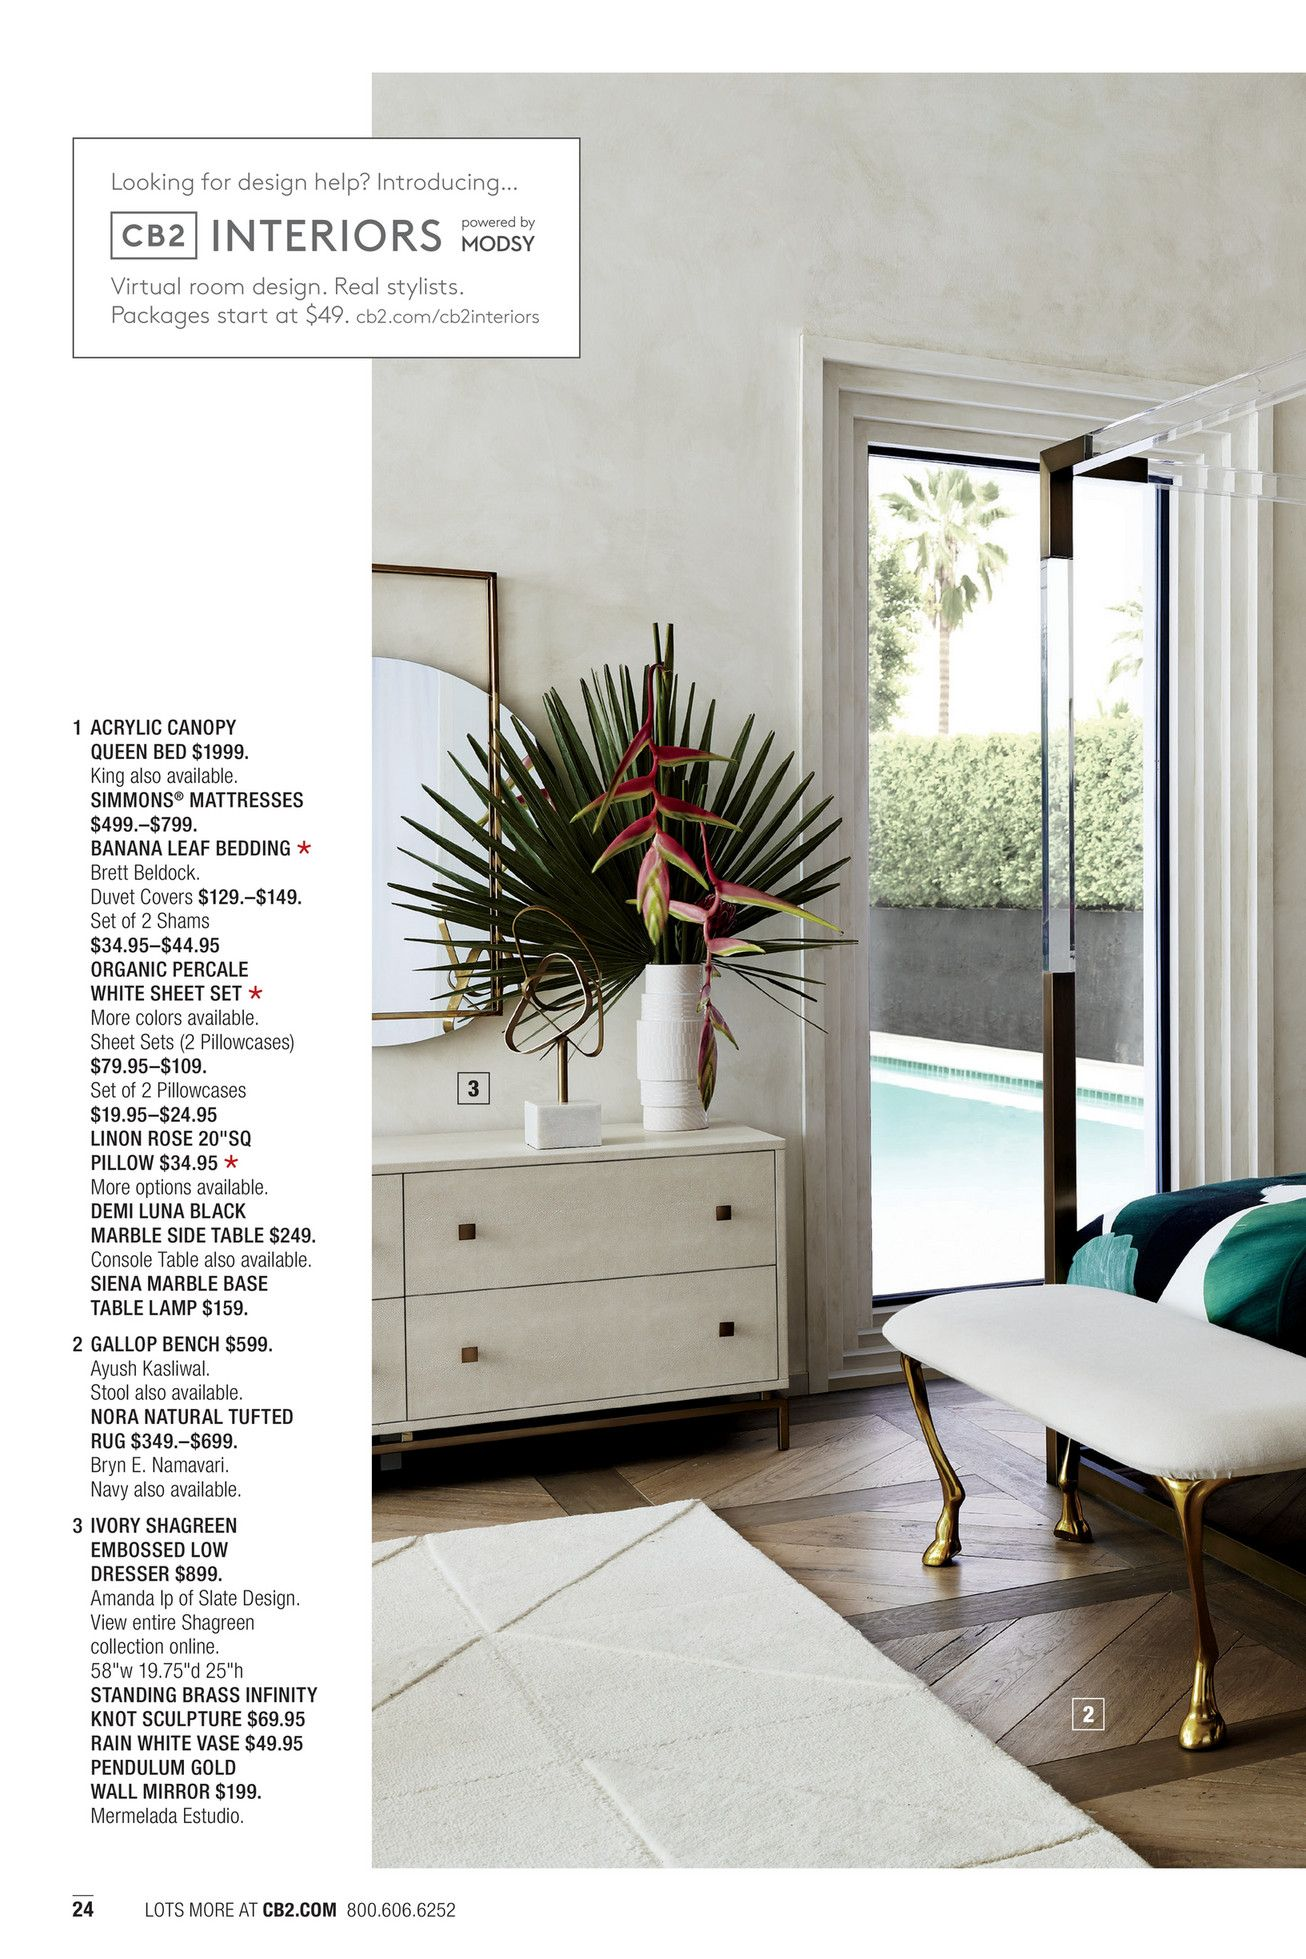 CB2 June Catalog 2018 Page 2425 Queen canopy bed